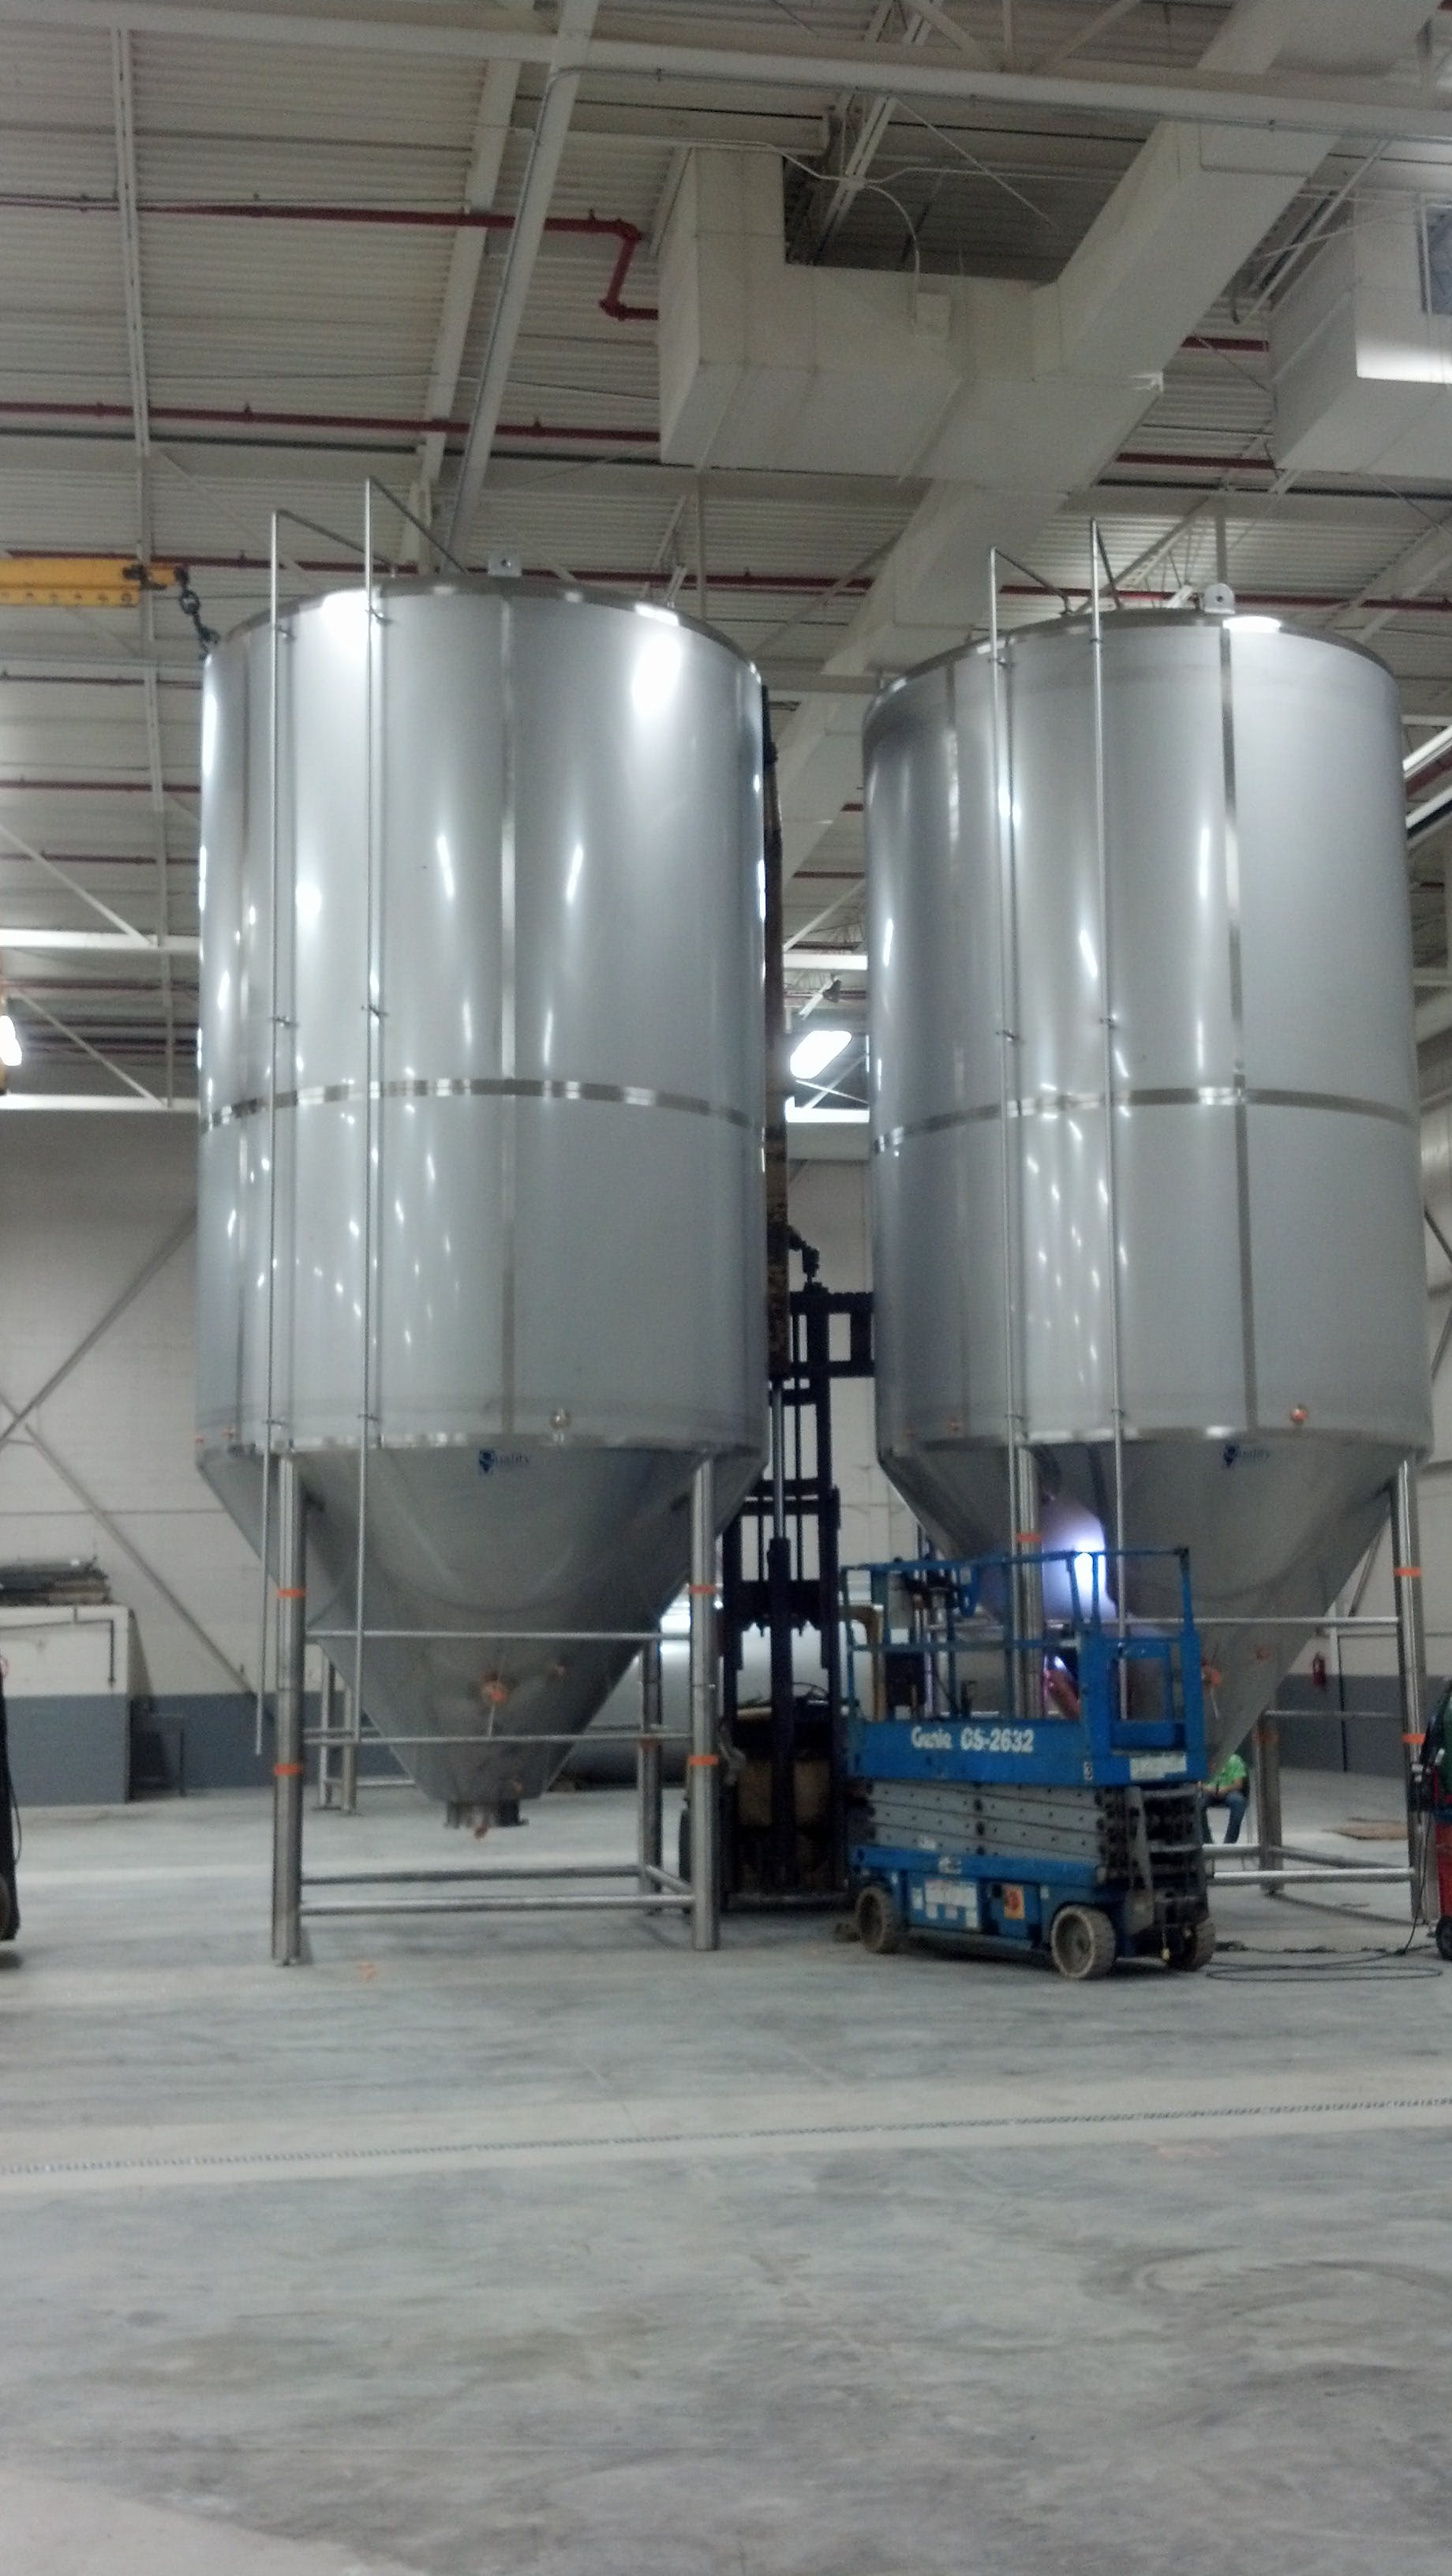 Fermenters Fermenter sold by Quality Tank Solutions